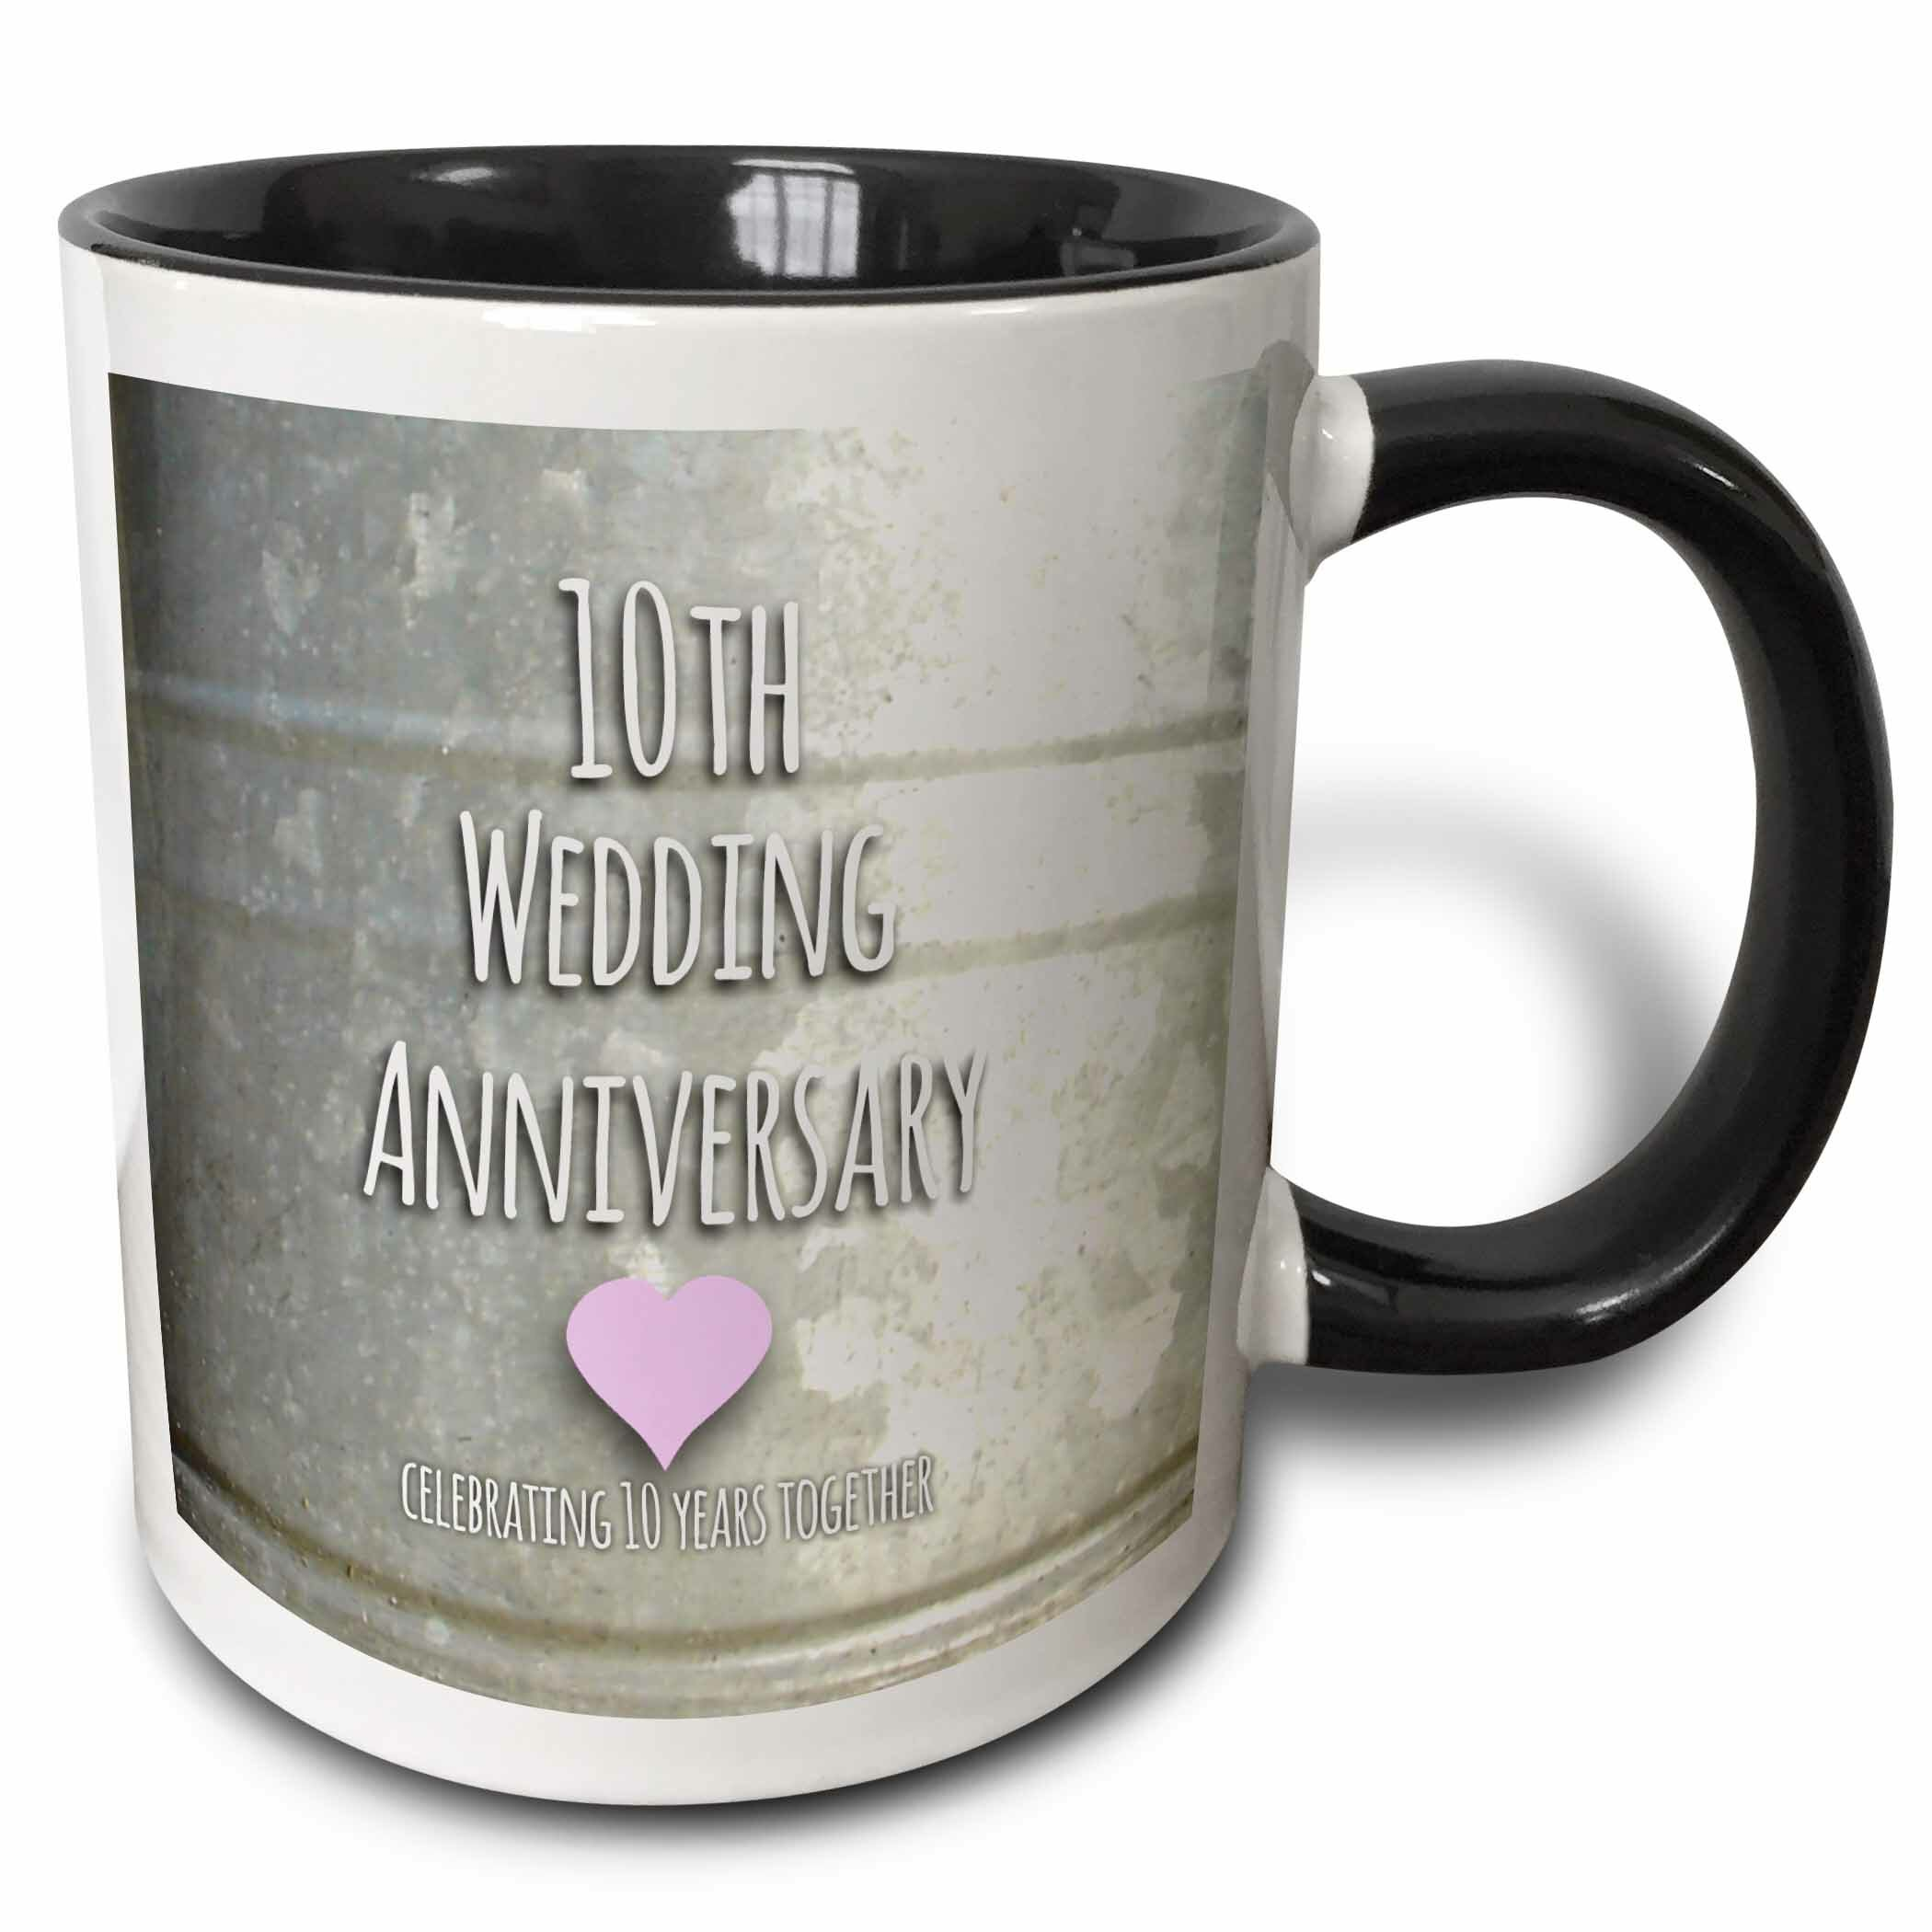 Ebern Designs Duras 10th Wedding Anniversary Gift Coffee Mug Wayfair